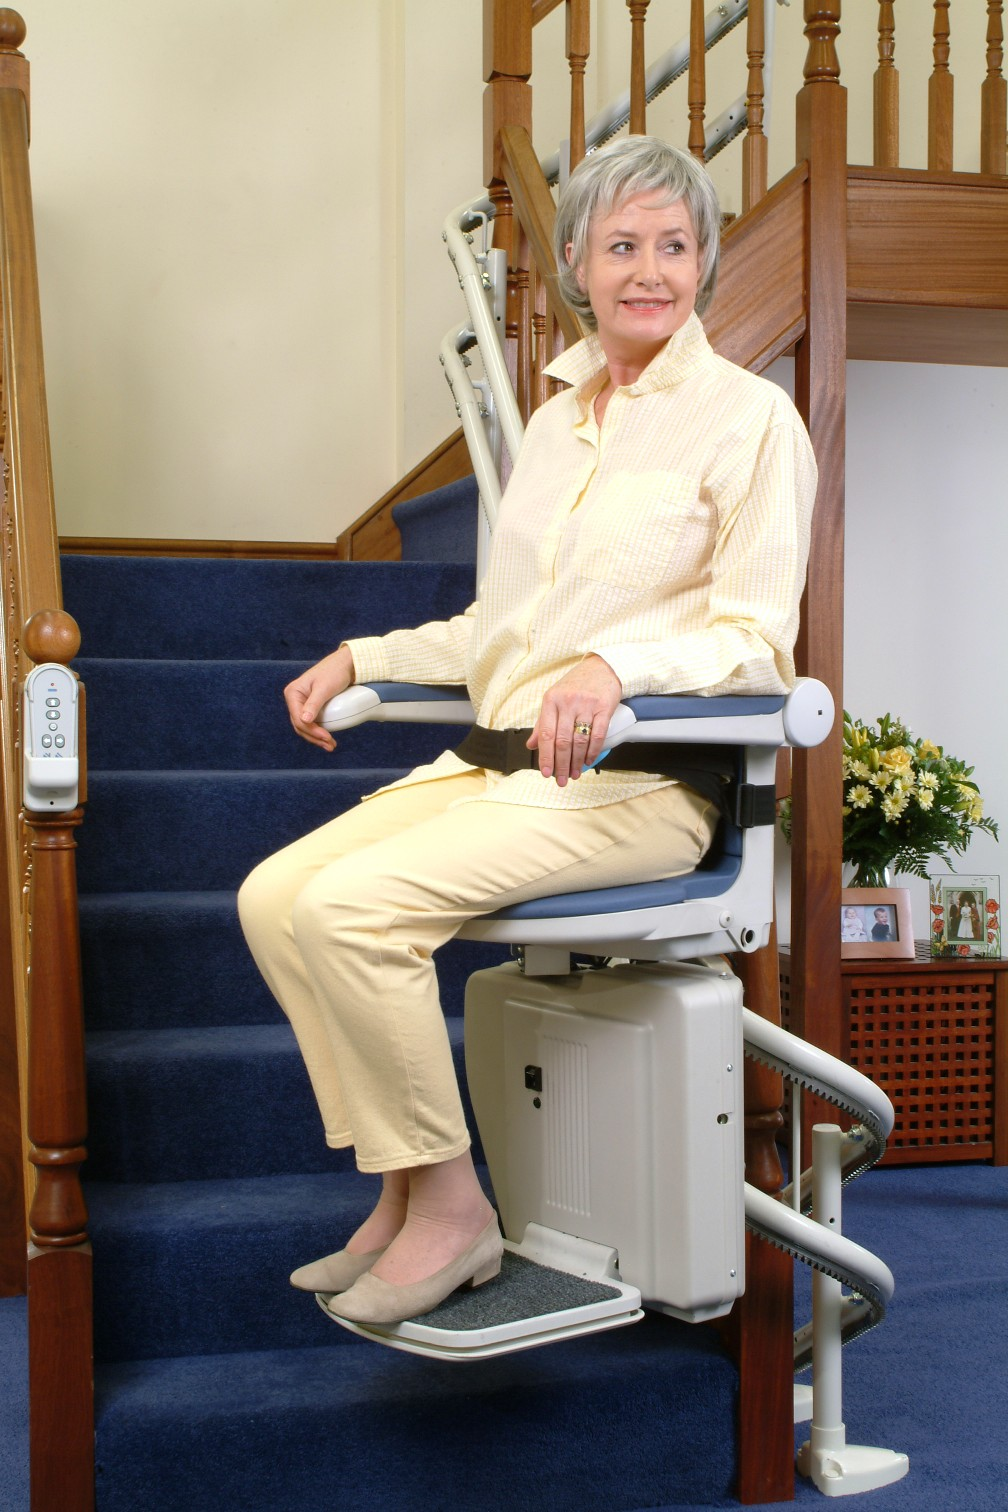 acorn stairlifts orlando fl, elevators stair lifts, stairlifts reviews, craigslist stair lift